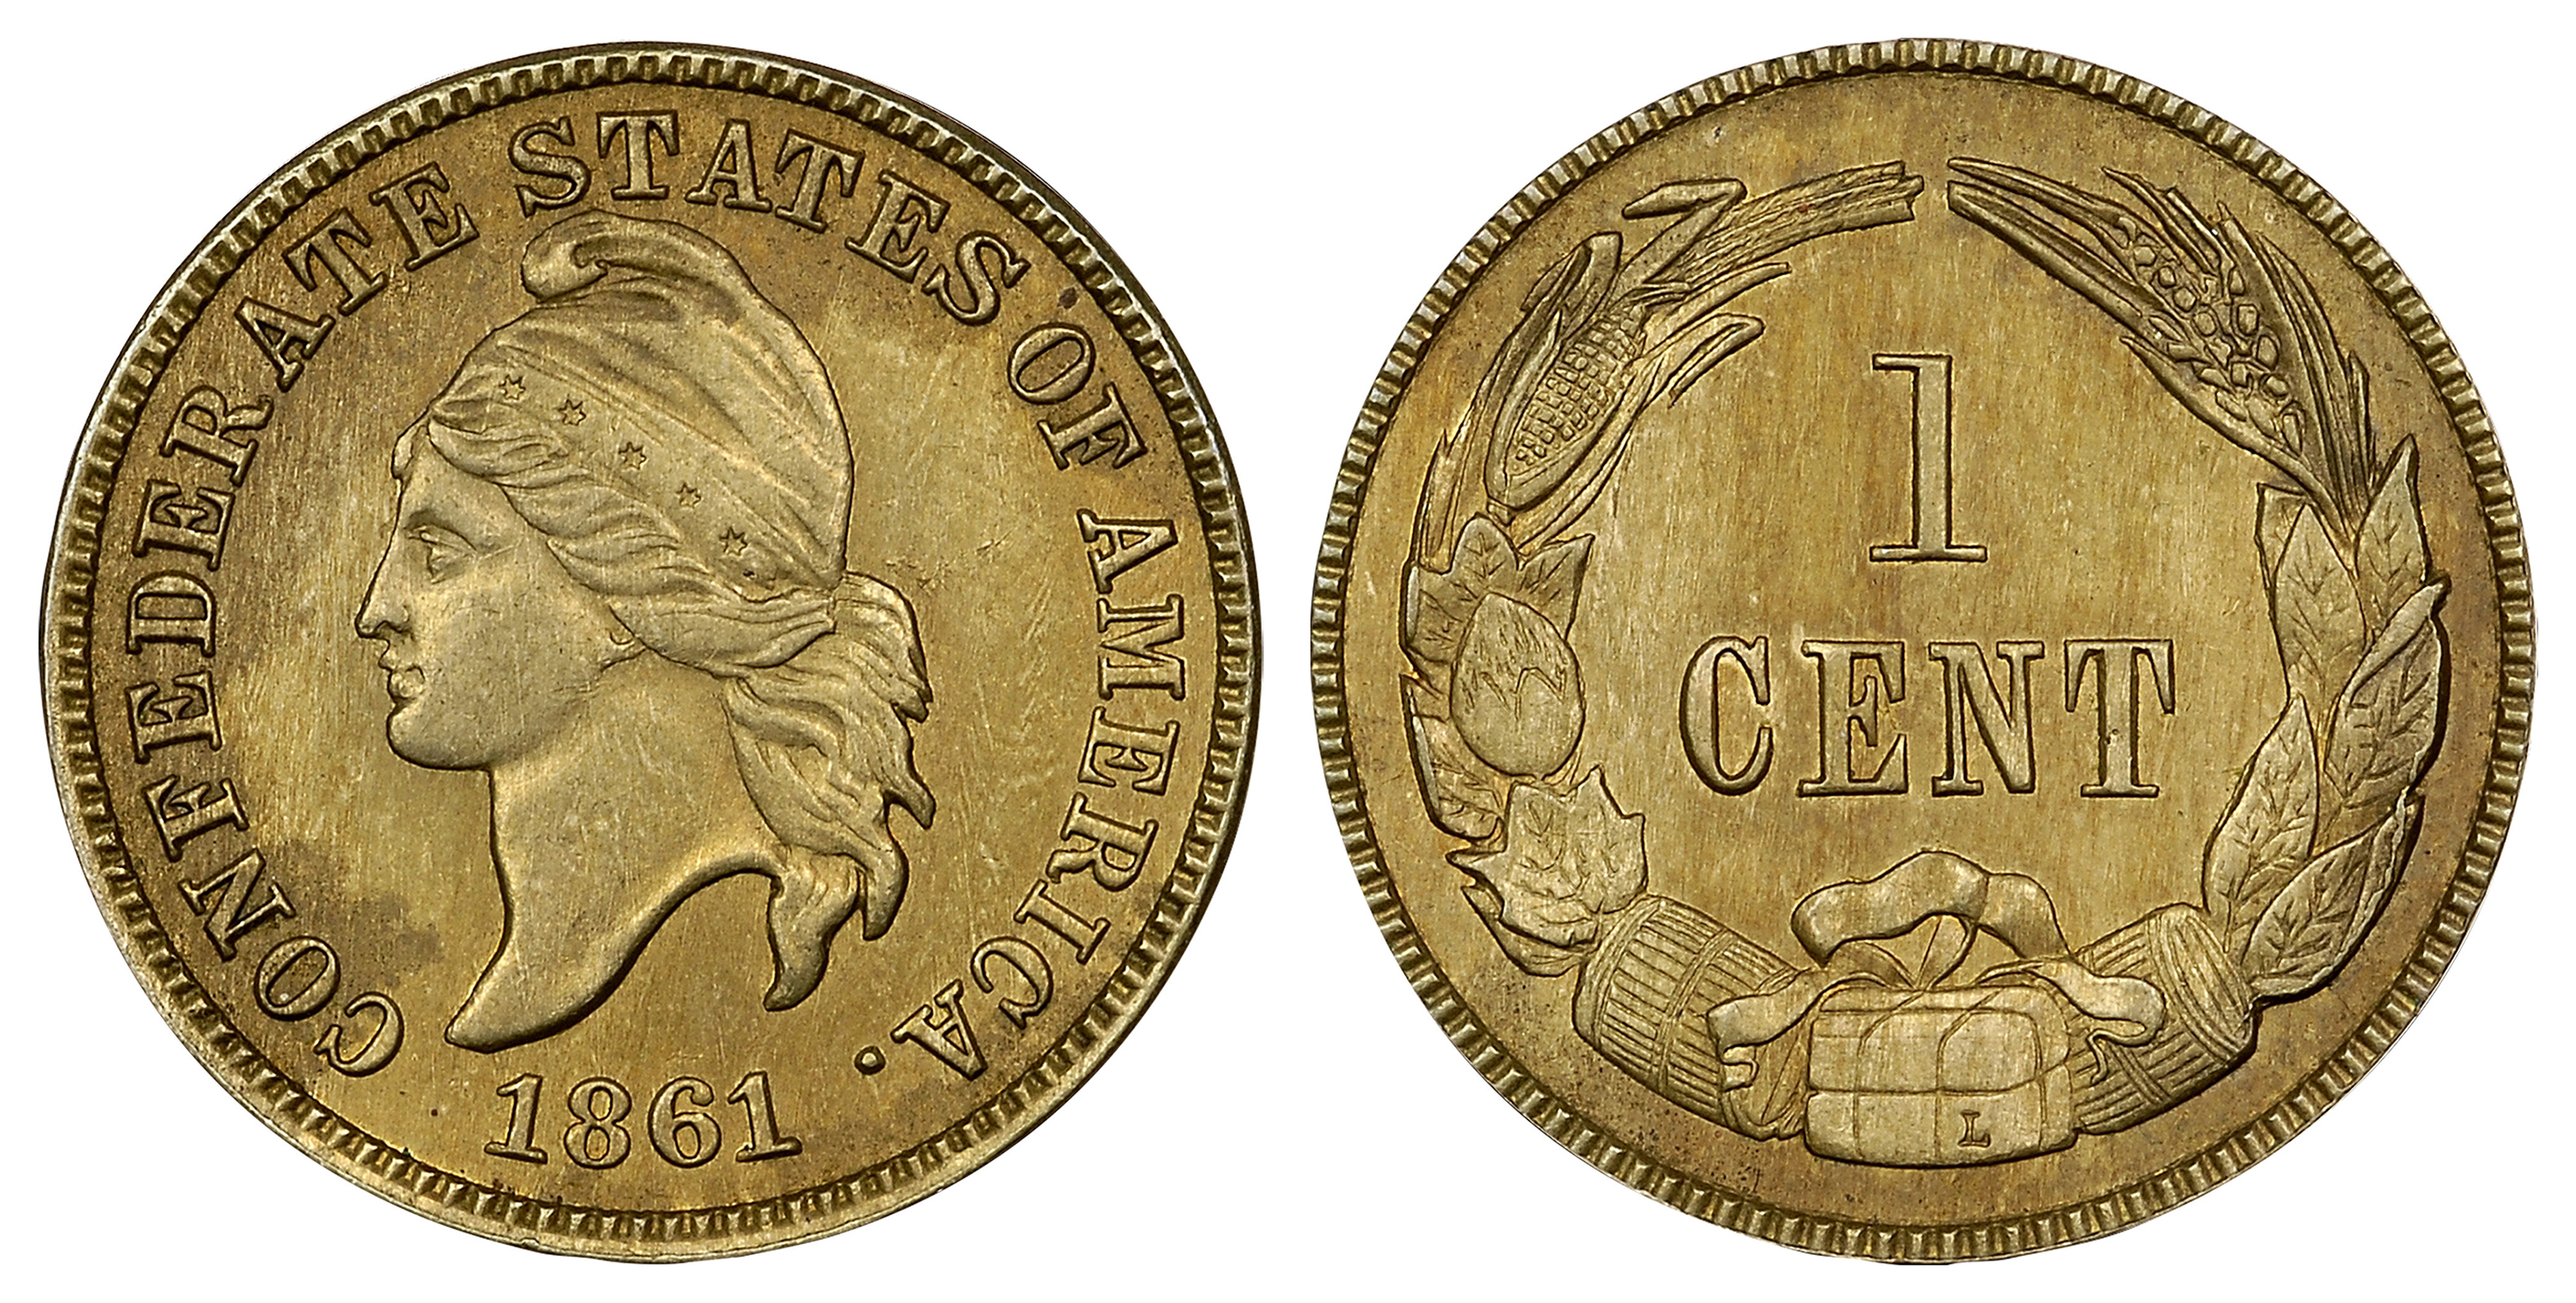 1861_1C_Original_Confederate_Cent.jpg